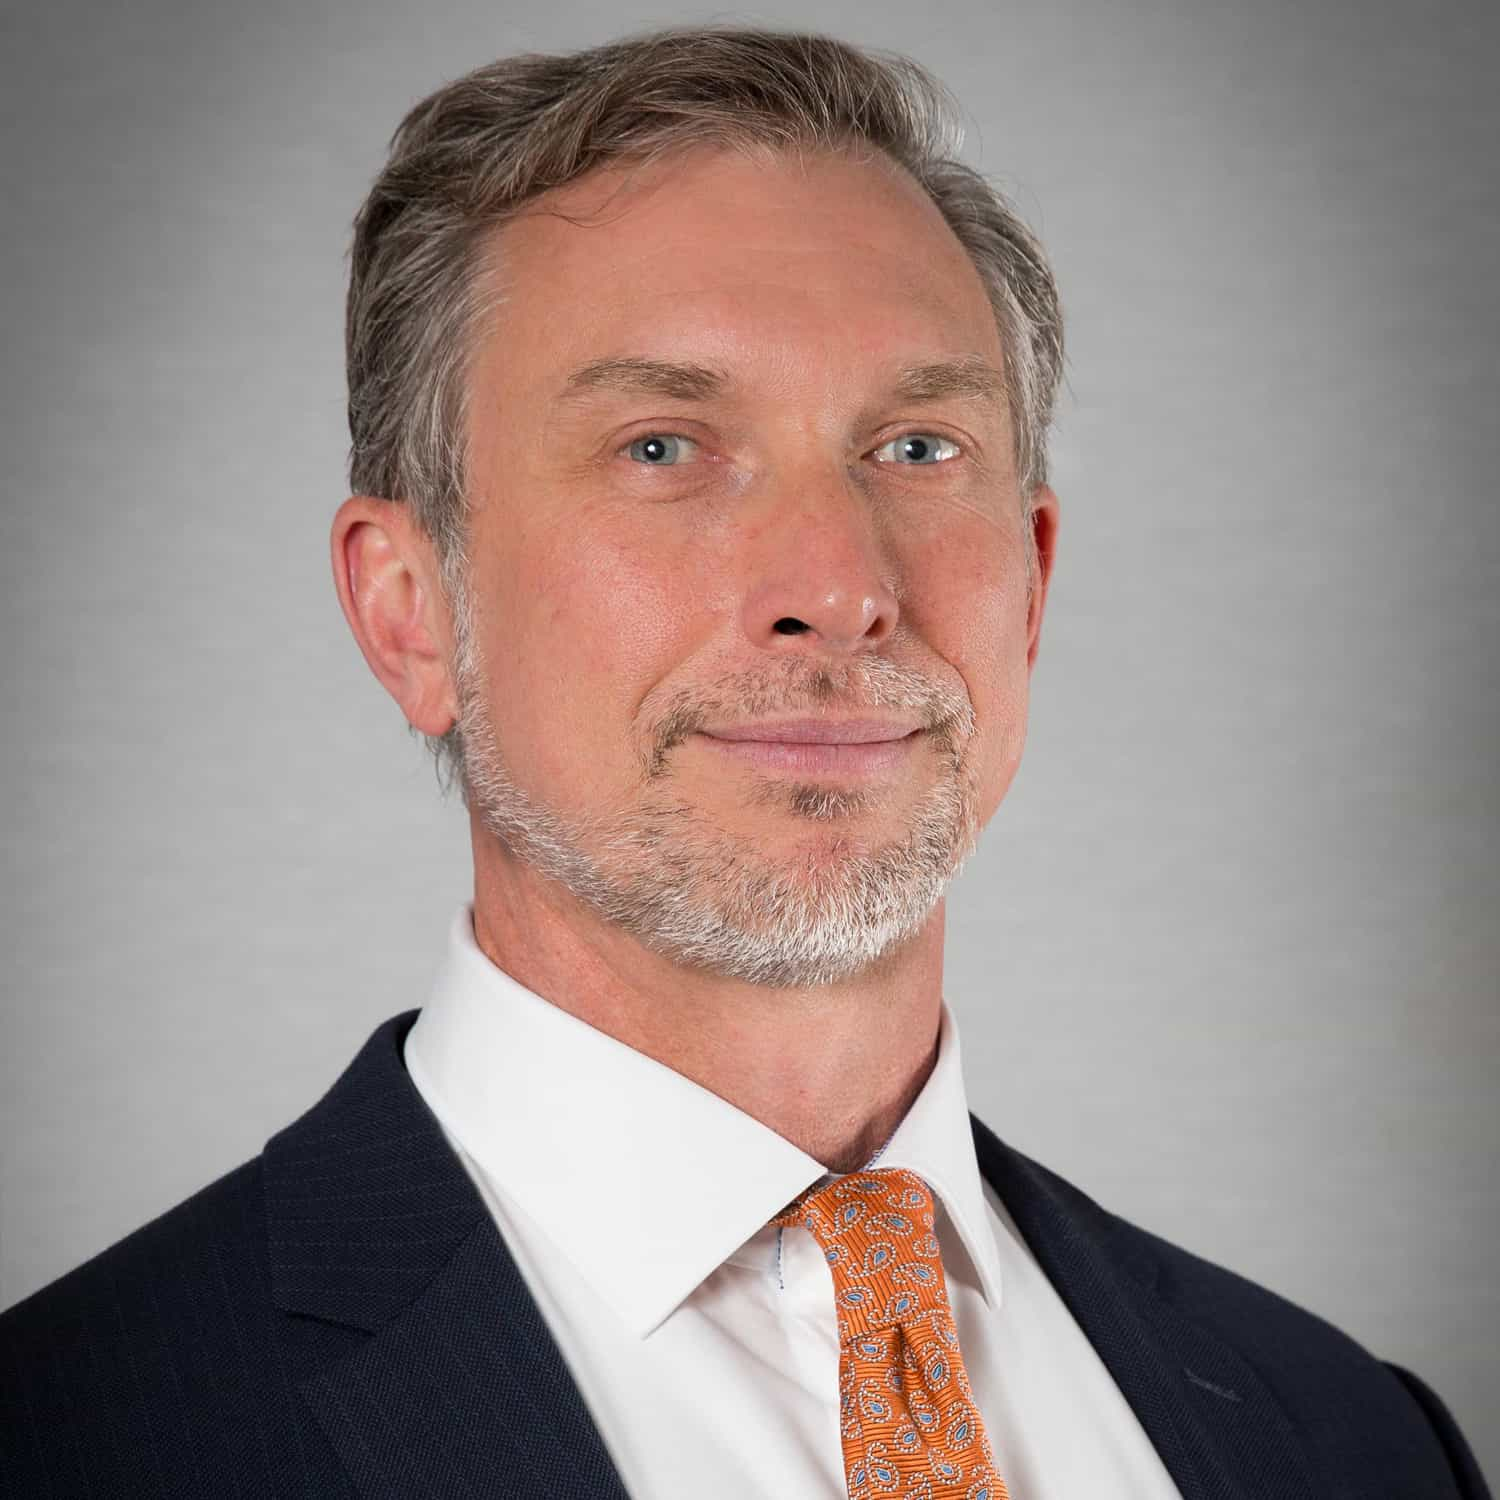 Brandon Blossman is Chief Financial Officer at Ranger Energy Services